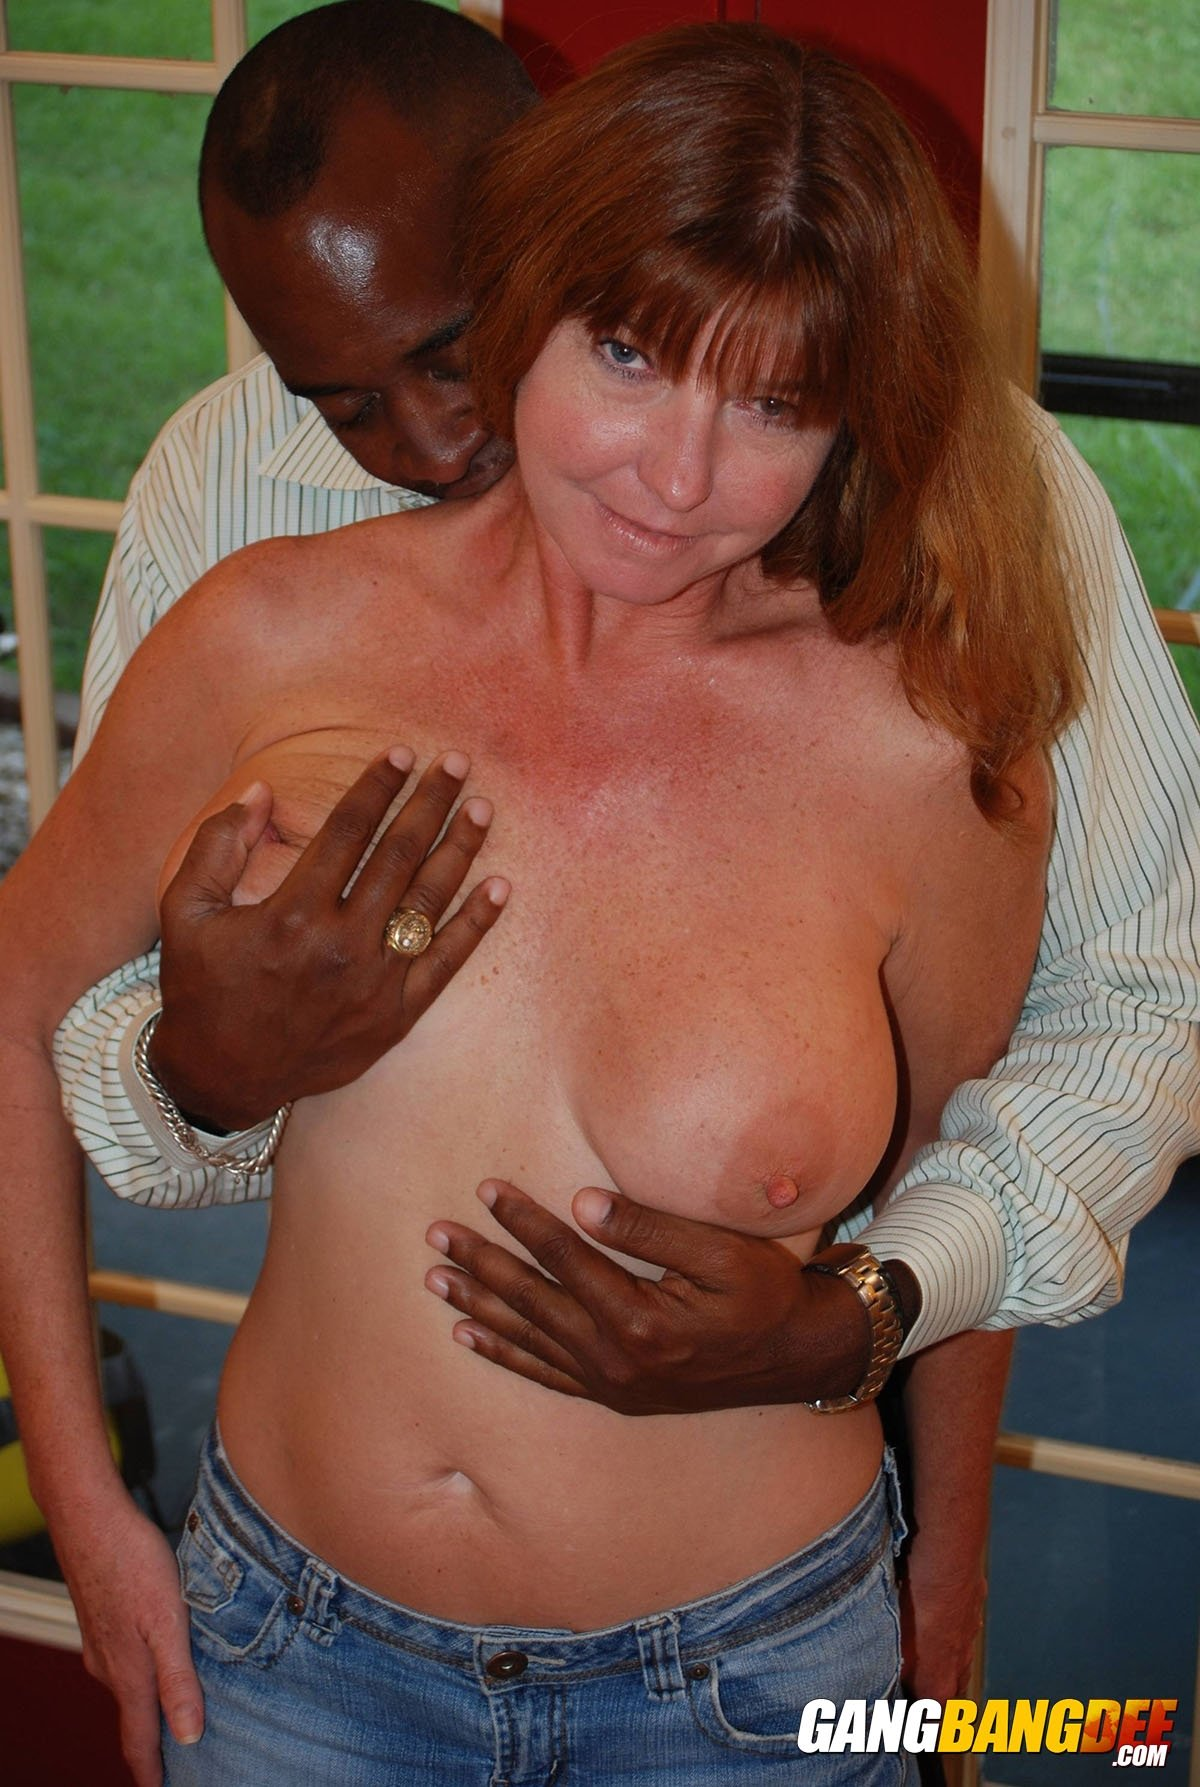 Free small cock white men humiliated by black women vintage amateur tube